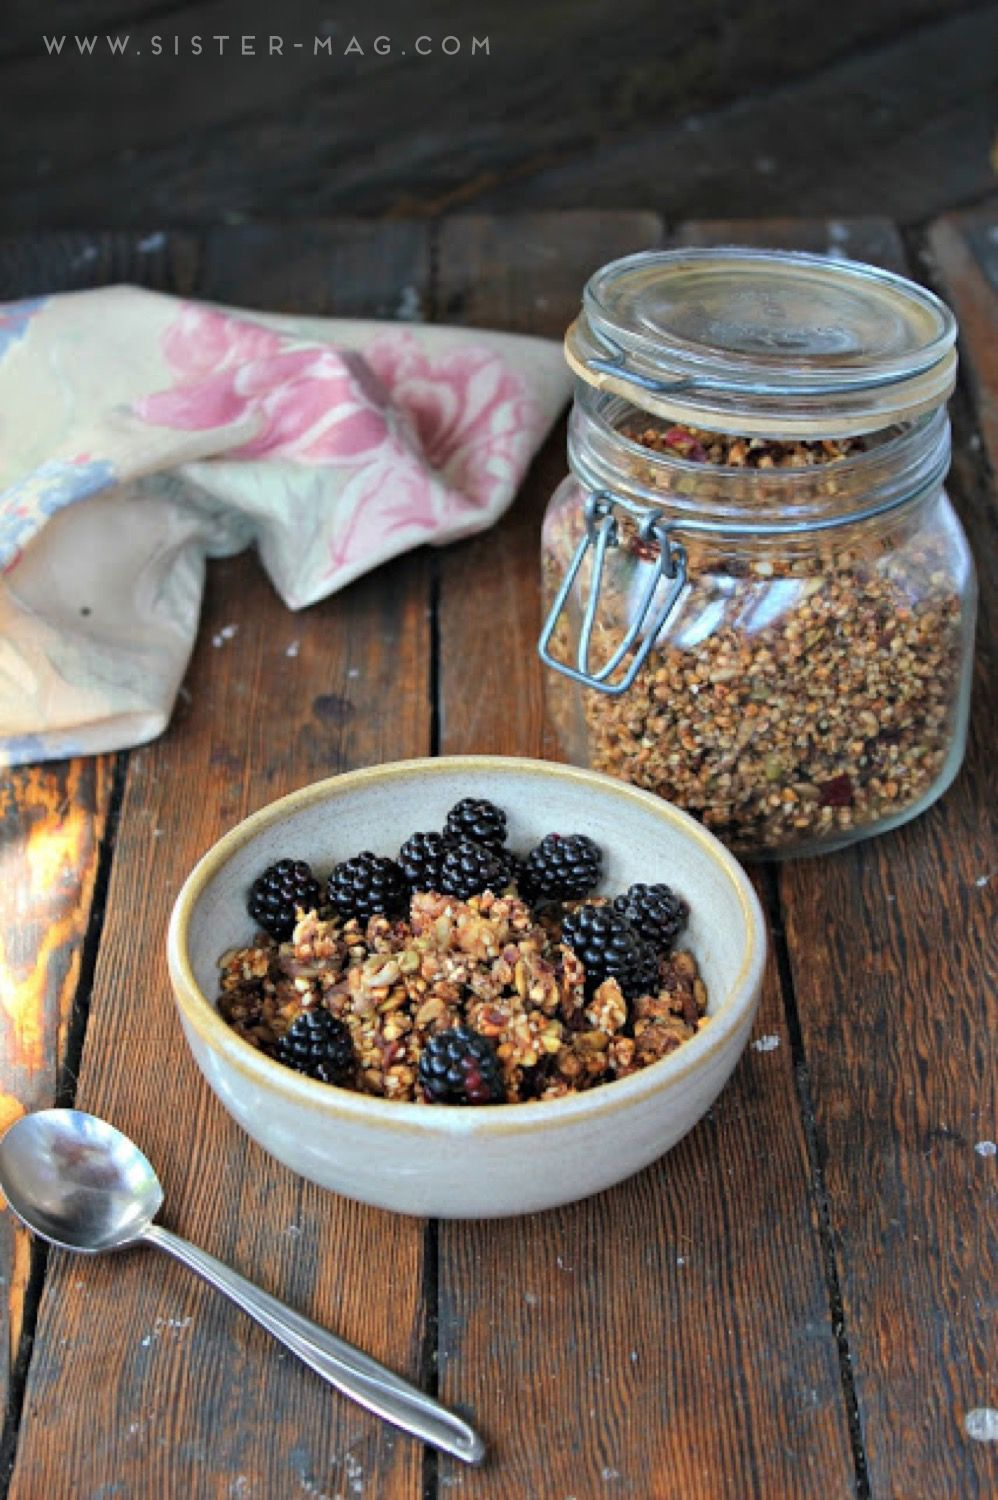 Sprouded Buckweat Granola by #WholeHeartedEats // Gekeimtes Buchweizenmüsli von www.wholeheartedeats.com #Food #Recipe #sisterMAG15